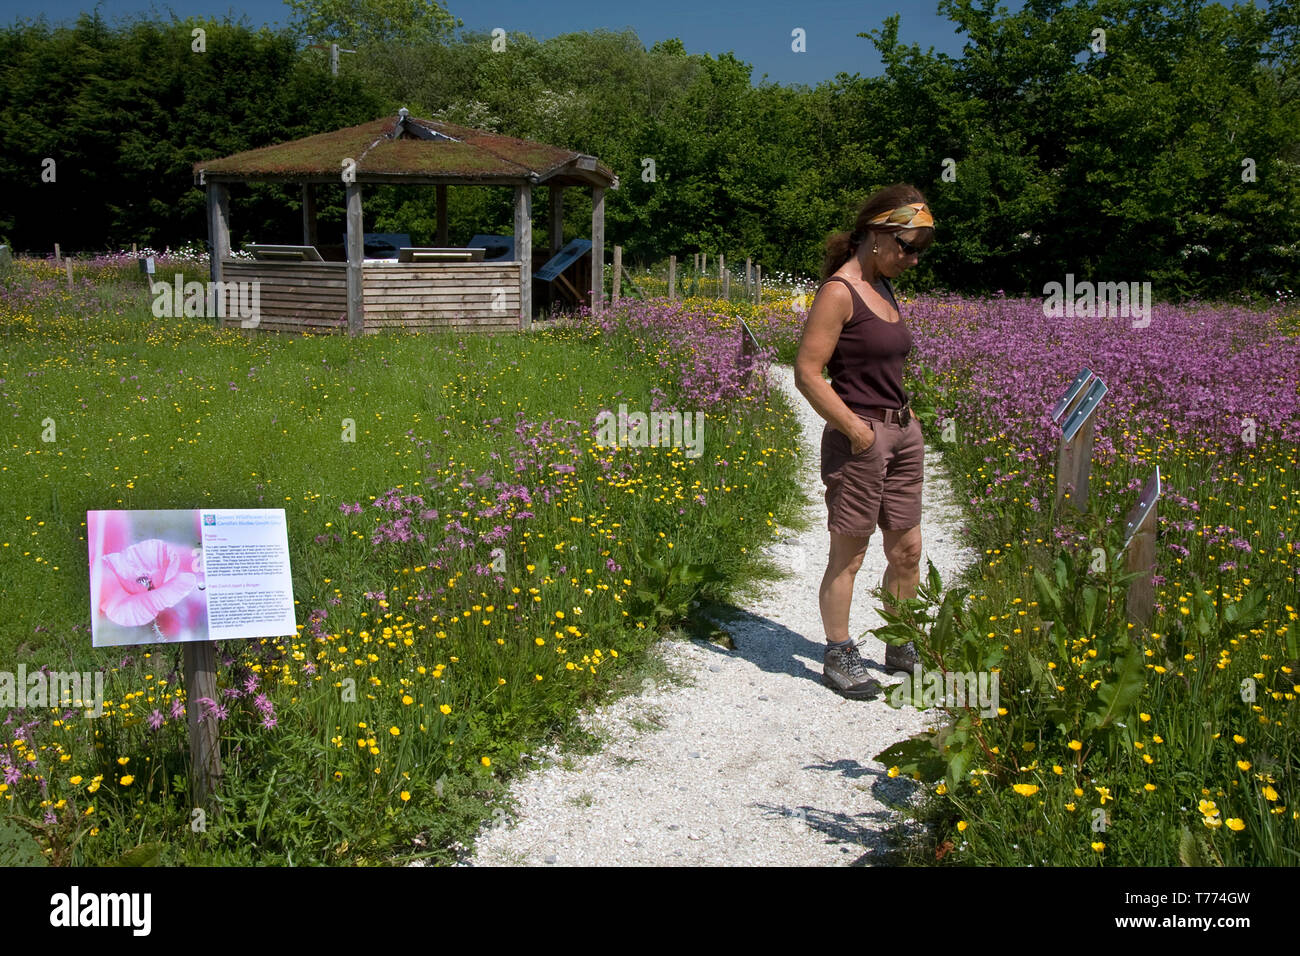 Gower Wildflower & Local Produce Centre, environmental garden, Gower Peninsula, South Wales - Stock Image